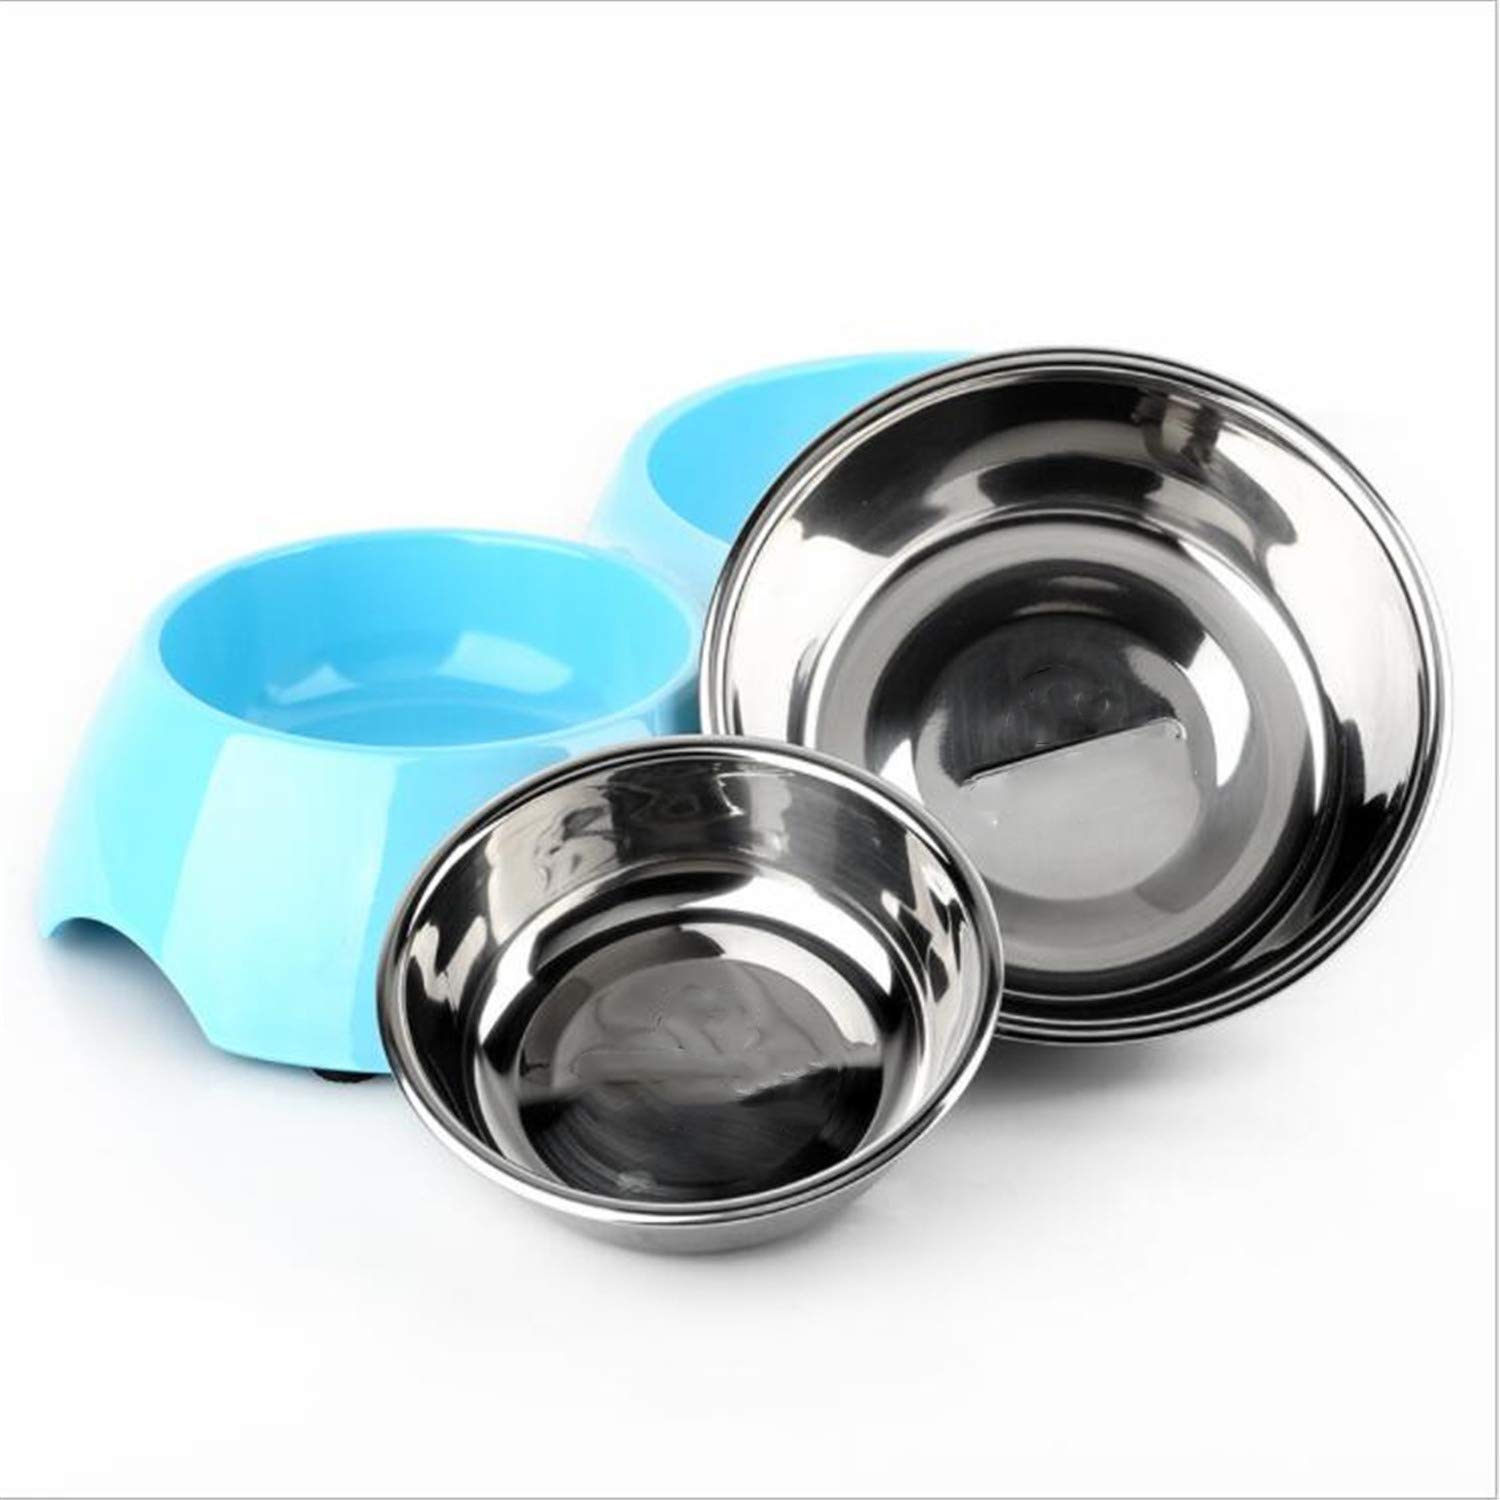 Small Dog Bowls,Water and Food Feeder,Double Bowls,Non Slip Stainless Steel,Inhibition of Bacteria,no Harm,High Temperature Resistance